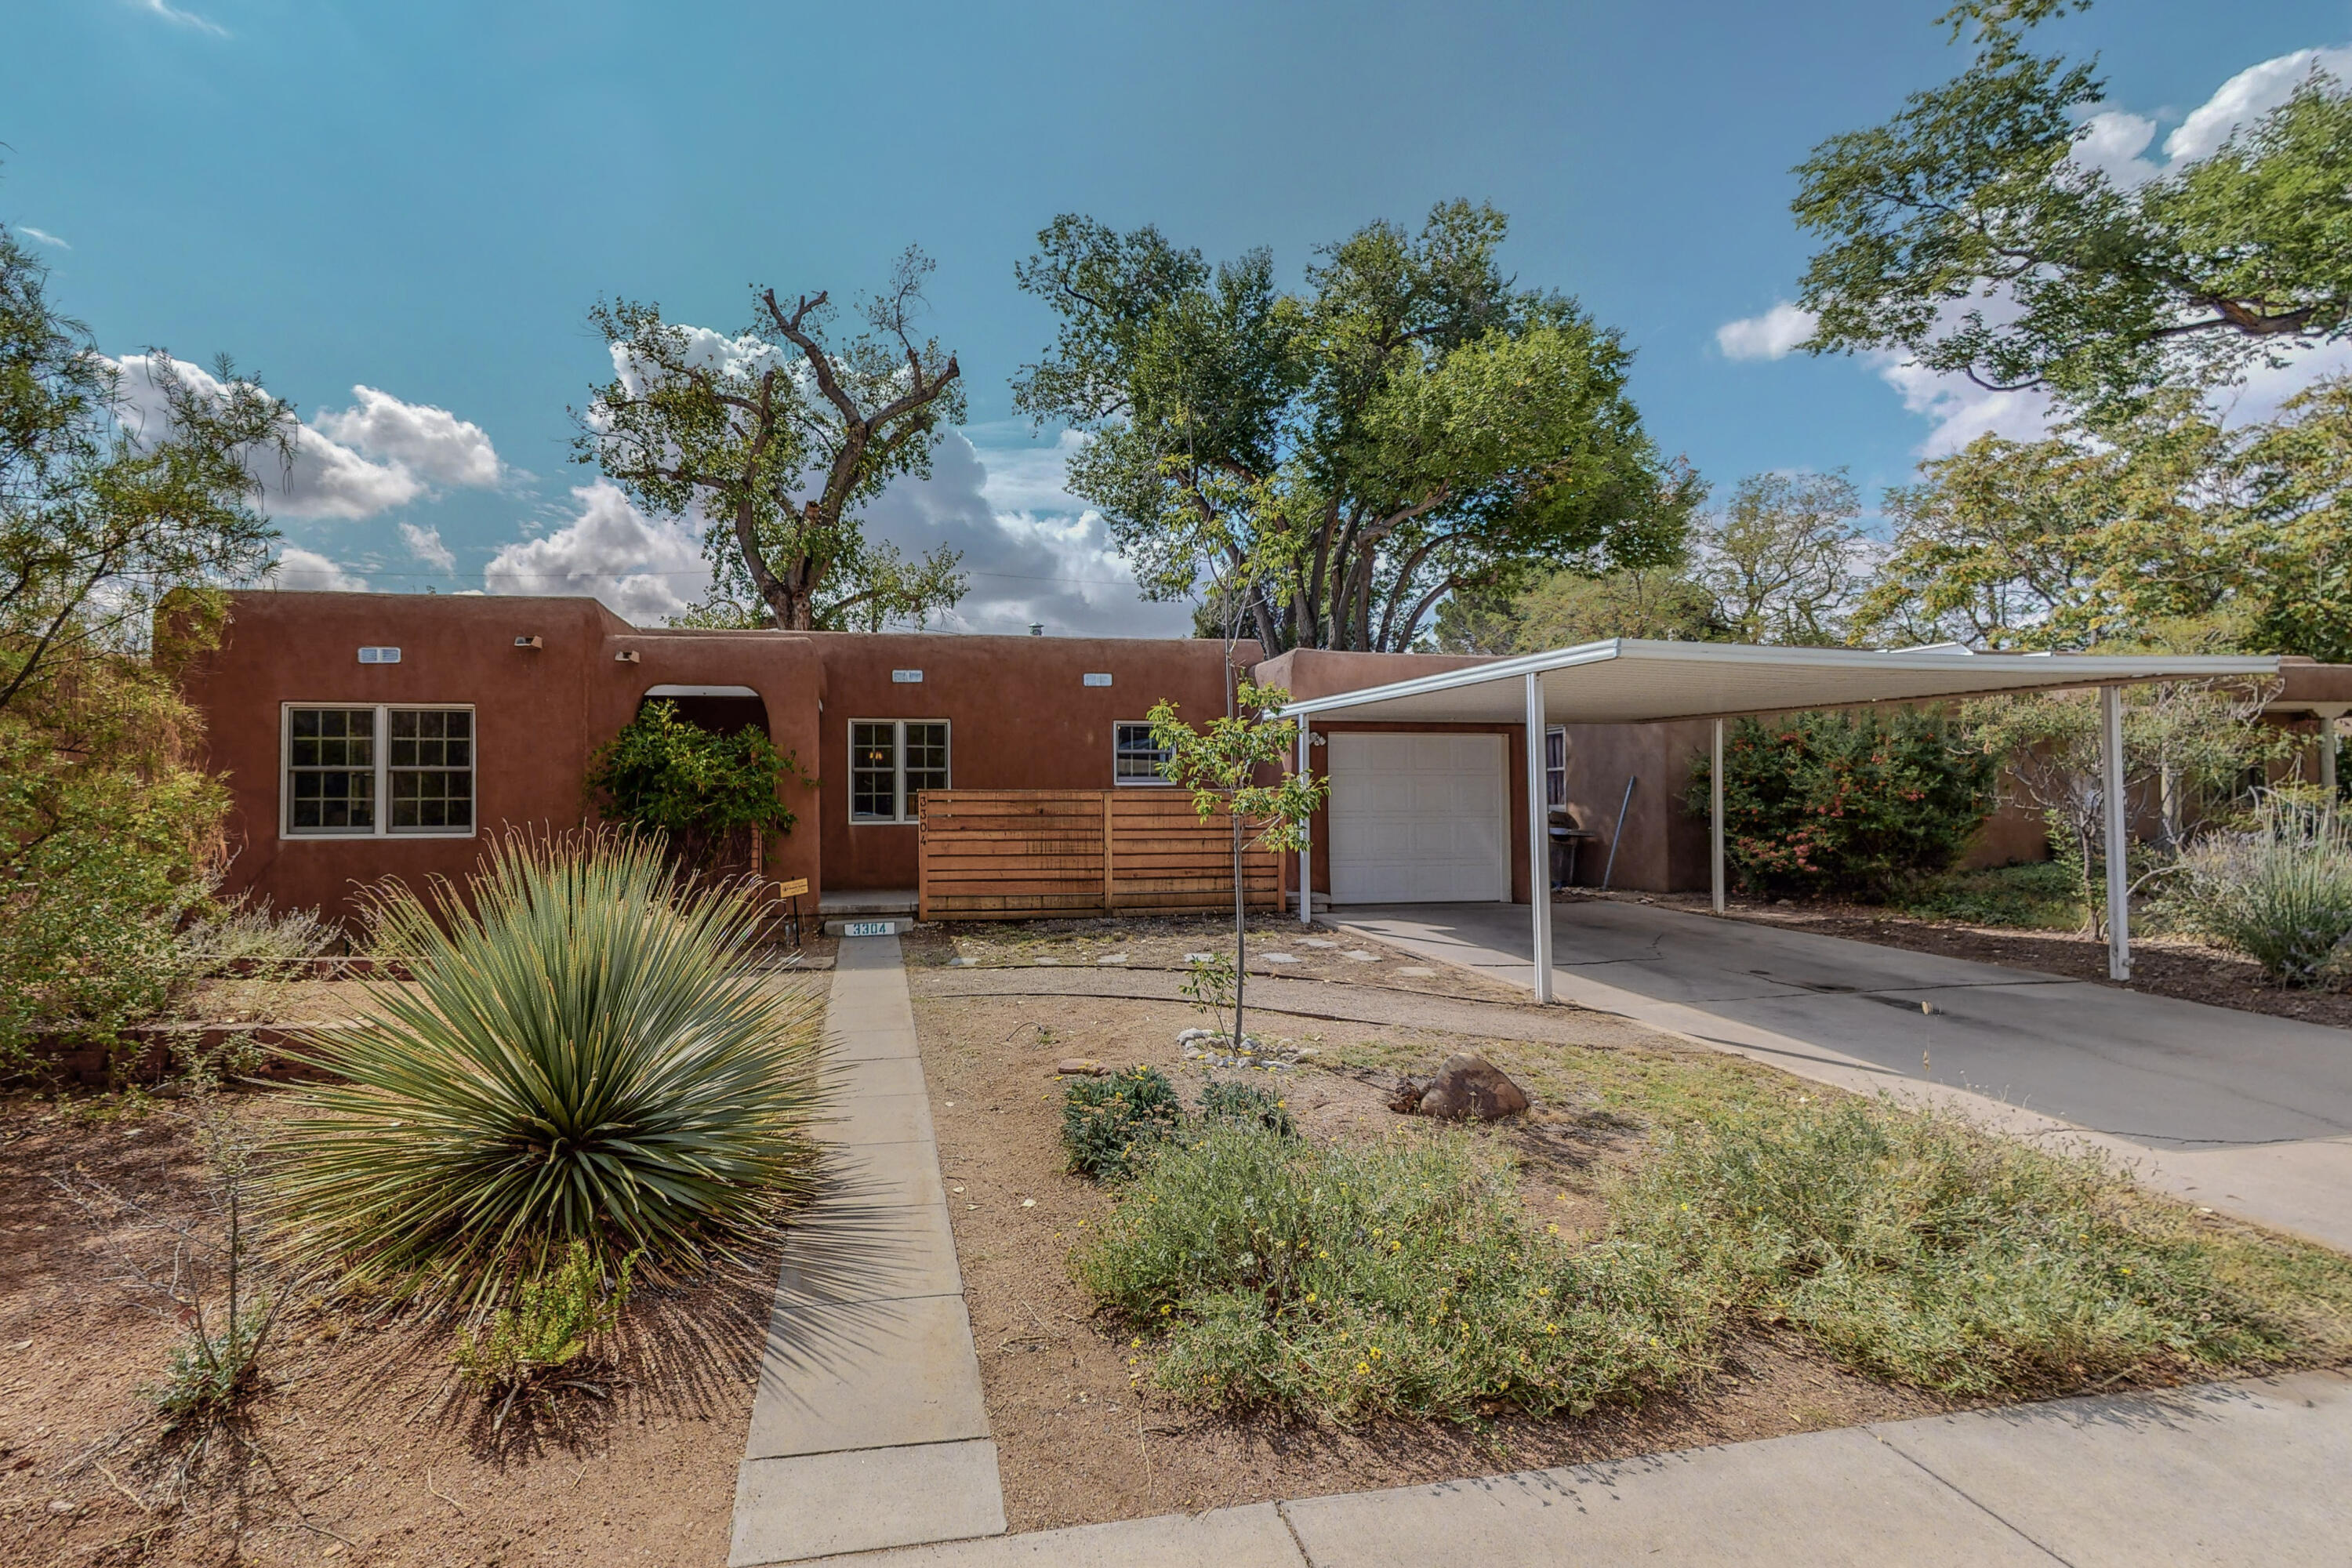 WOW! Gorgeous remodeled Pueblo with tons of character and darling curb appeal nestled in sought after UNM NORTH.  Classic features: original hardwood floors, cove ceiling & kiva FP. Kitchen remodeled with custom Maple Shaker fronts, soft close cabinets, granite counters, high end stainless appl and gas cooktop. Other features: Brand new washer and dryer, new paint, mini-splits with refrigerated air, ceiling fans, updated windows & new water heater. Owner's suite has walk-in closet, sitting room or office, classic wood ceiling & French doors leading to backyard and restful patio. You will LOVE the huge yard with above ground pool, raised beds for gardening, large shed, party lights and gated walled yard for privacy. This gem, just minutes to UNM and Bataan Park, is a true find. MUST SEE!